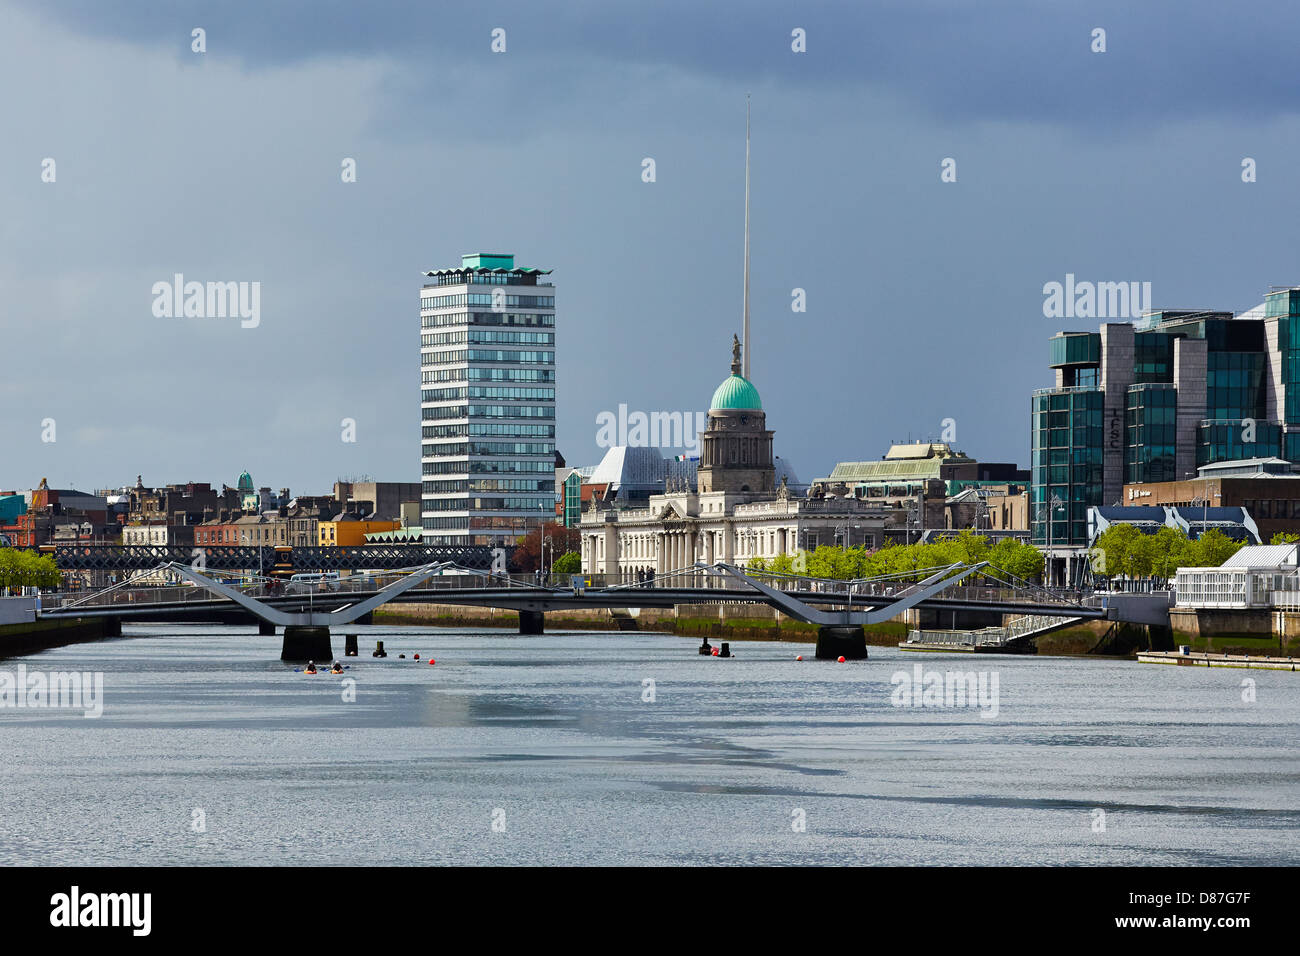 The River Liffey with the Custom House the Liberty Hall building and the Needle as landmarks on the Dublin skyline - Stock Image